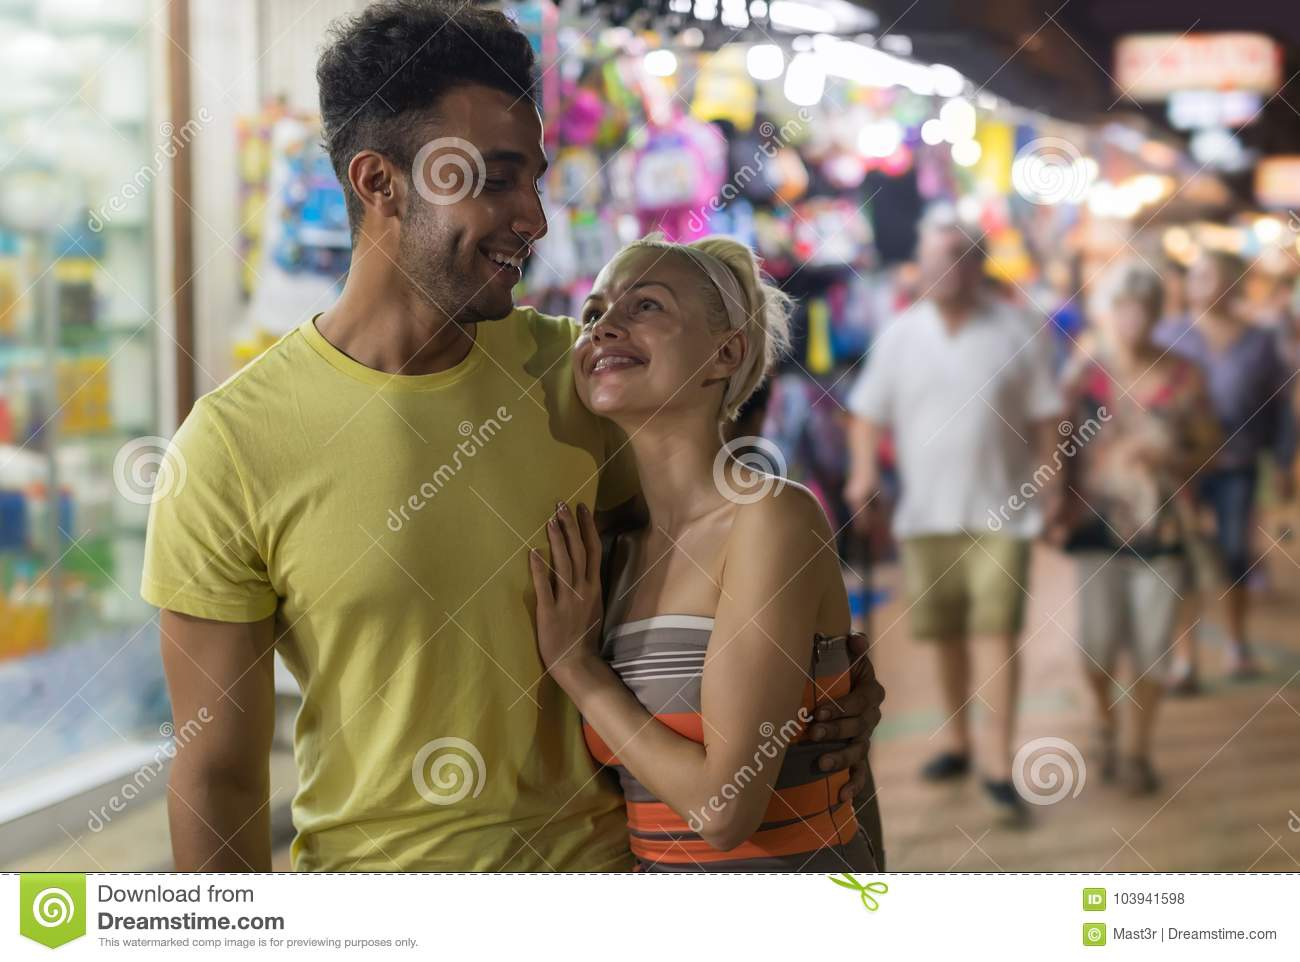 Couple Embracing On Street Market, Mix Race Man And Woman Happy Smiling Looking At Each Other